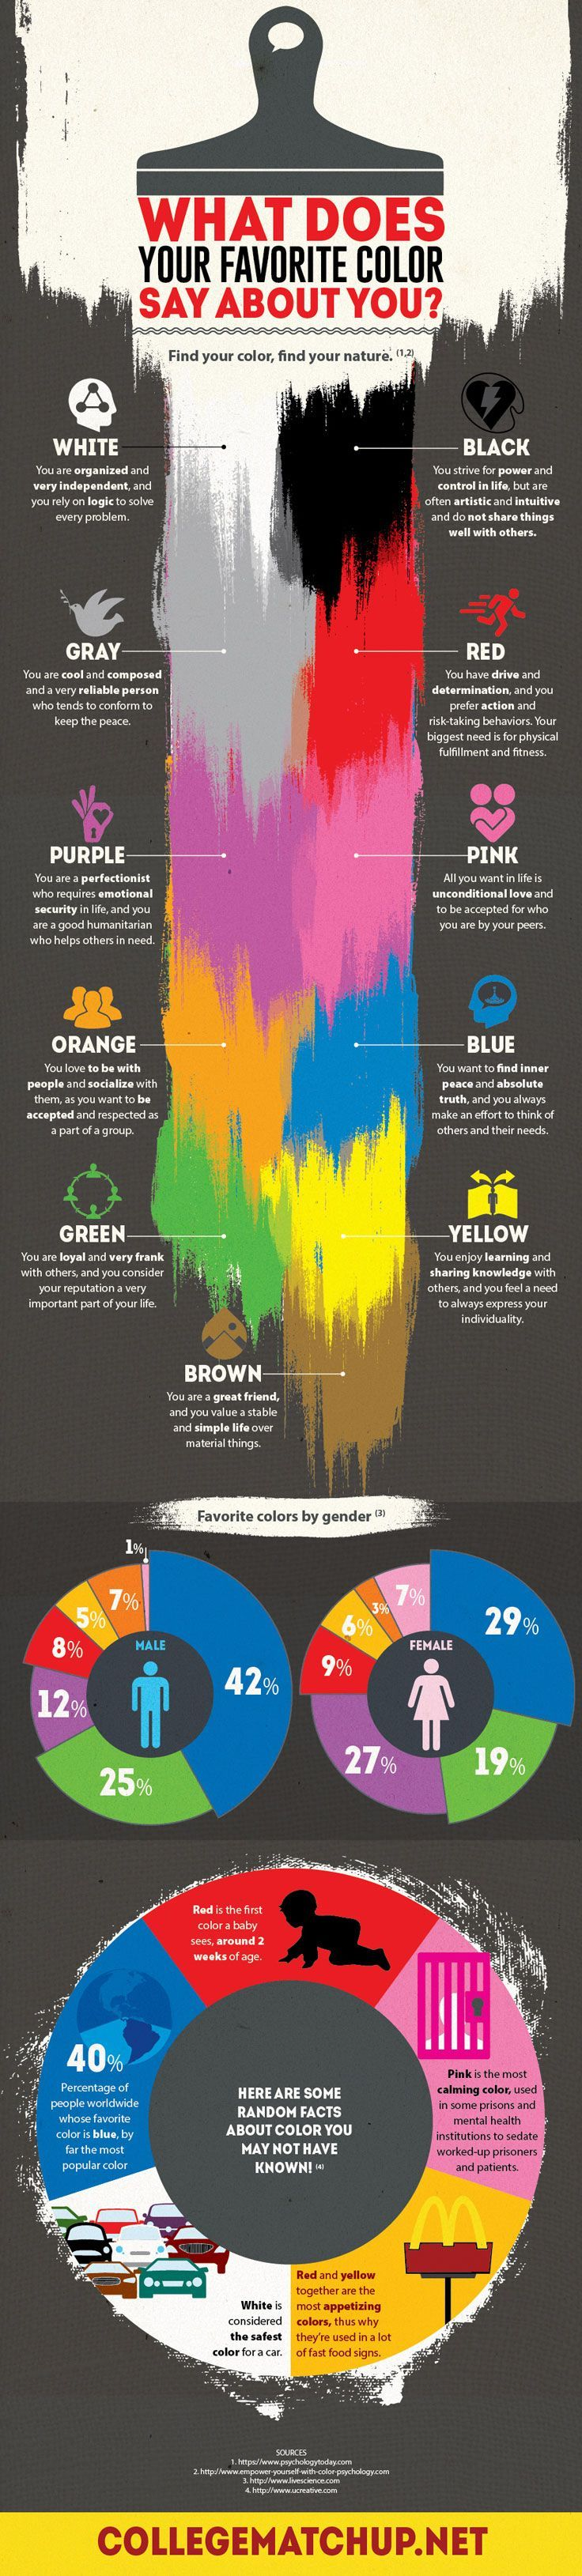 Got a favorite color? Well, what does your favorite color say about you? Check this artistic infographic for answers and fascinating color facts.